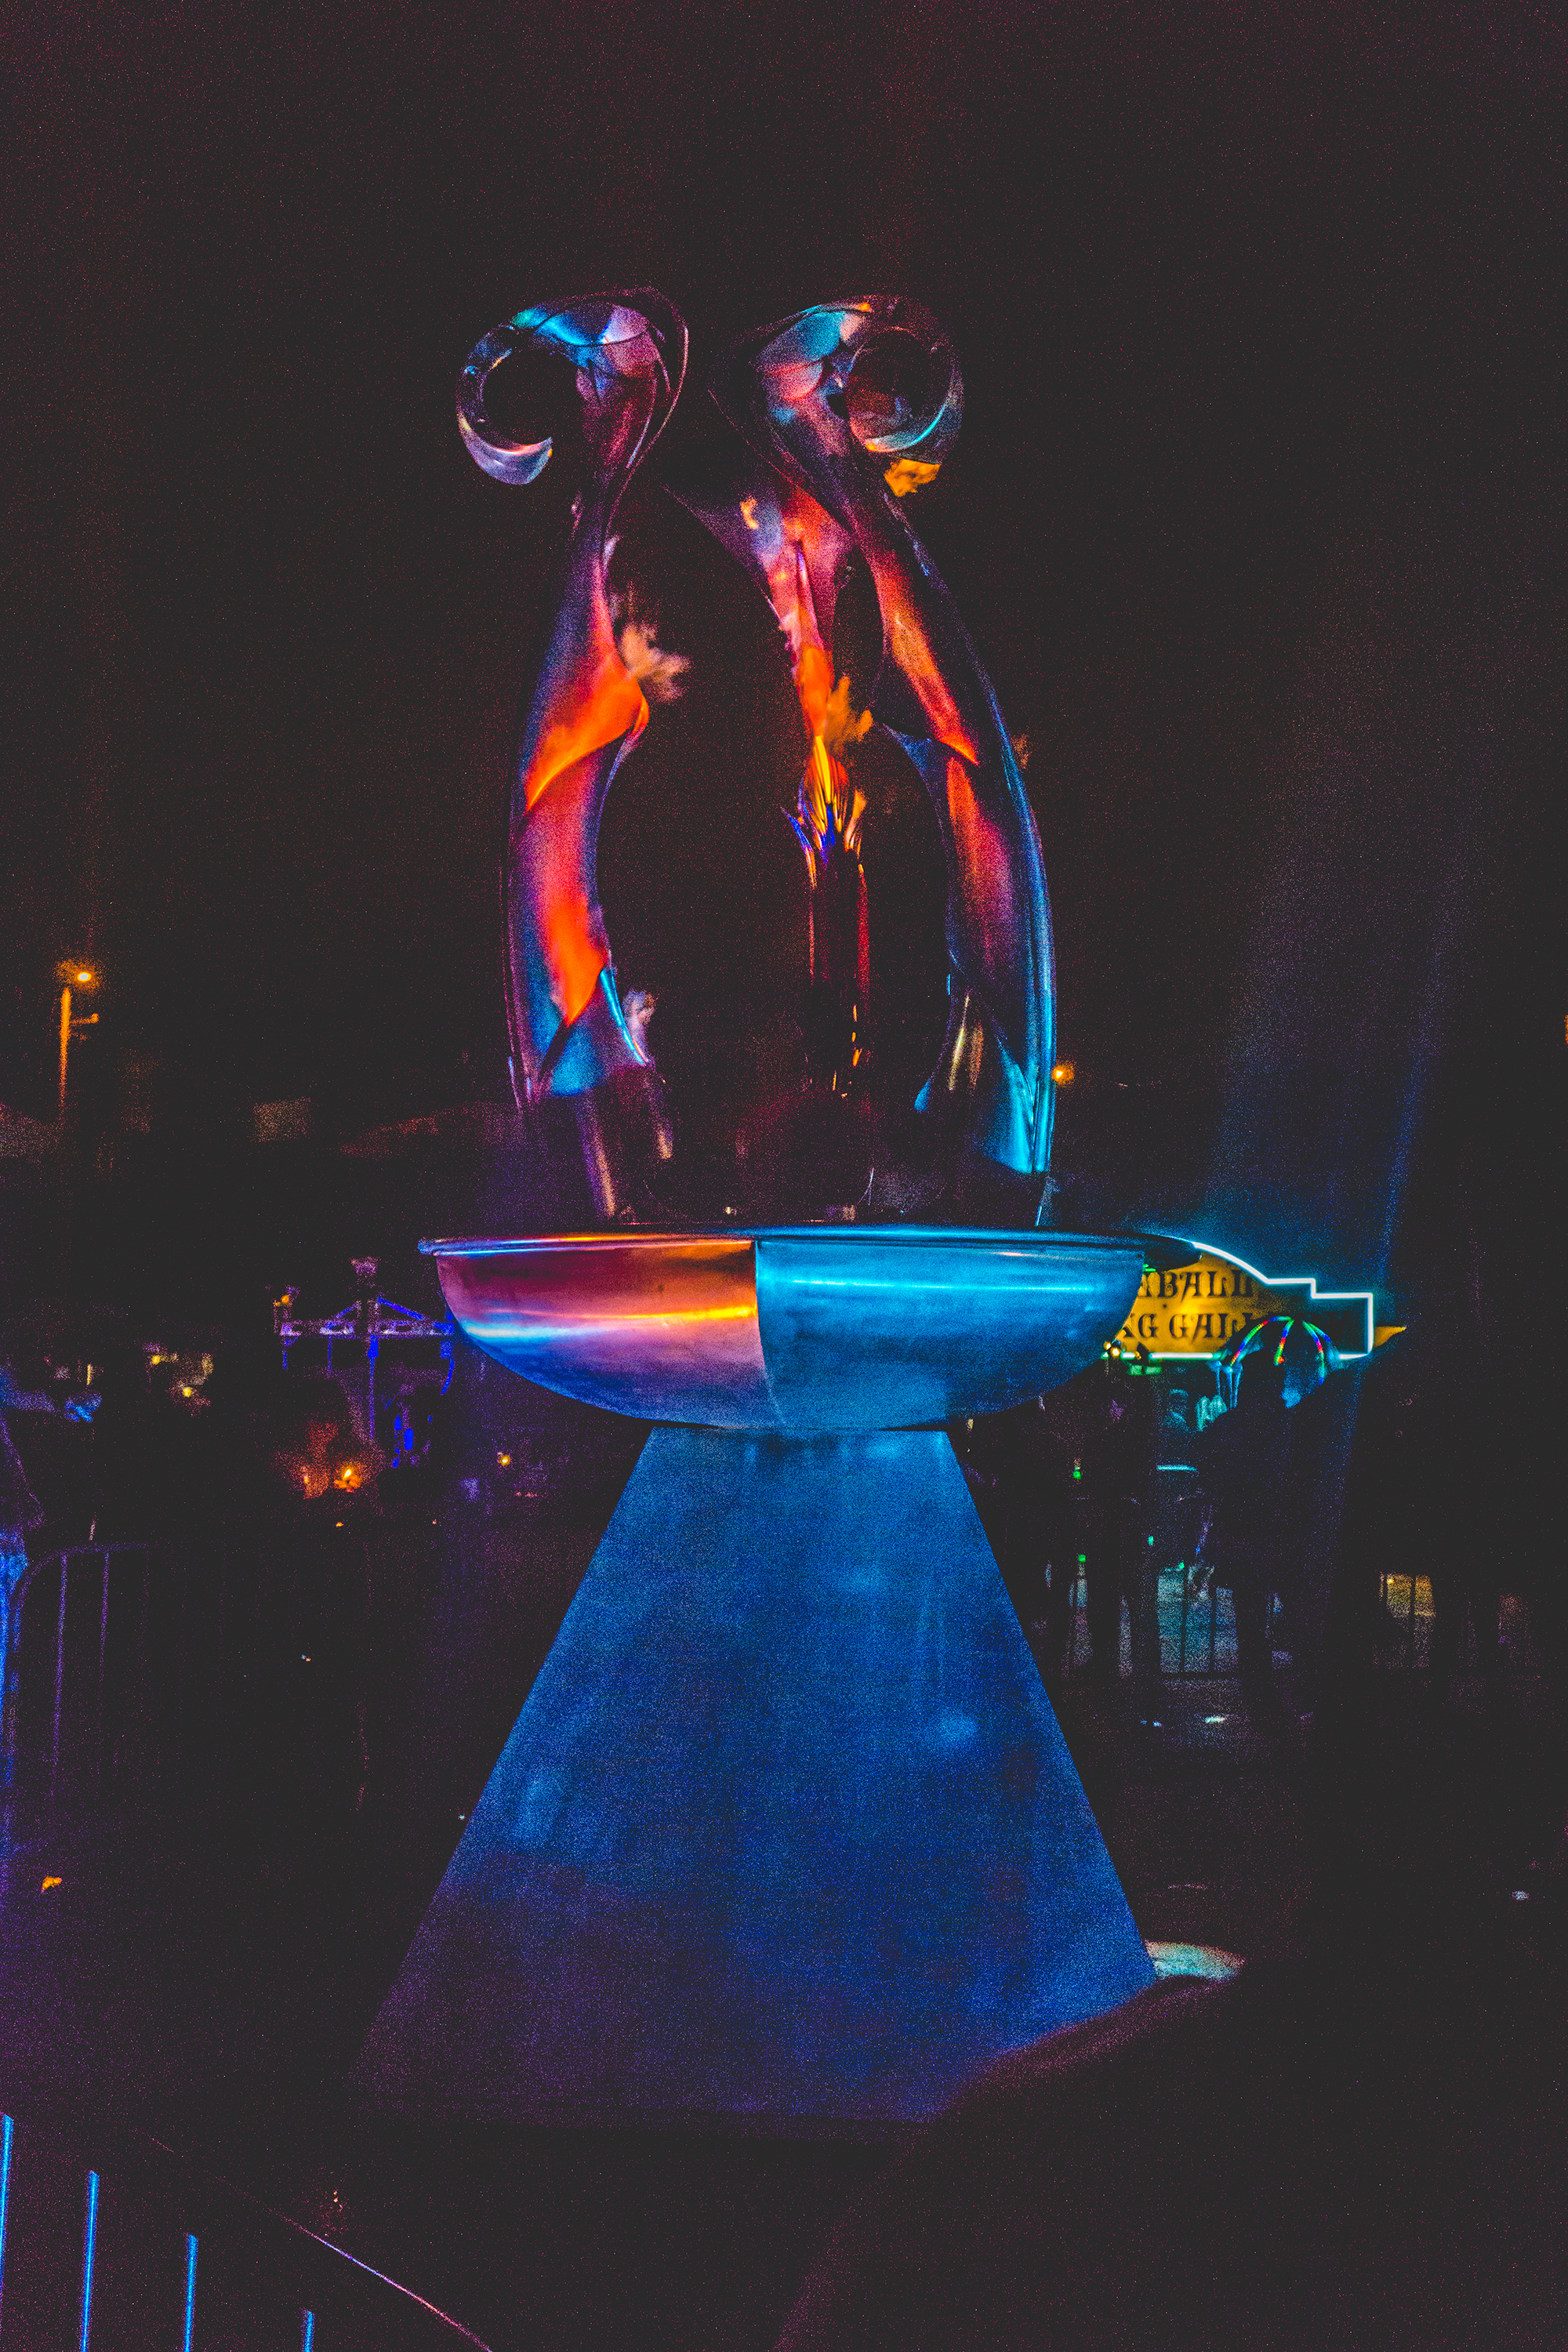 Divinatrix by Orion Fredericks: A water/steam, propane vapor/ methanol fountain made of hand formed  stainless steel